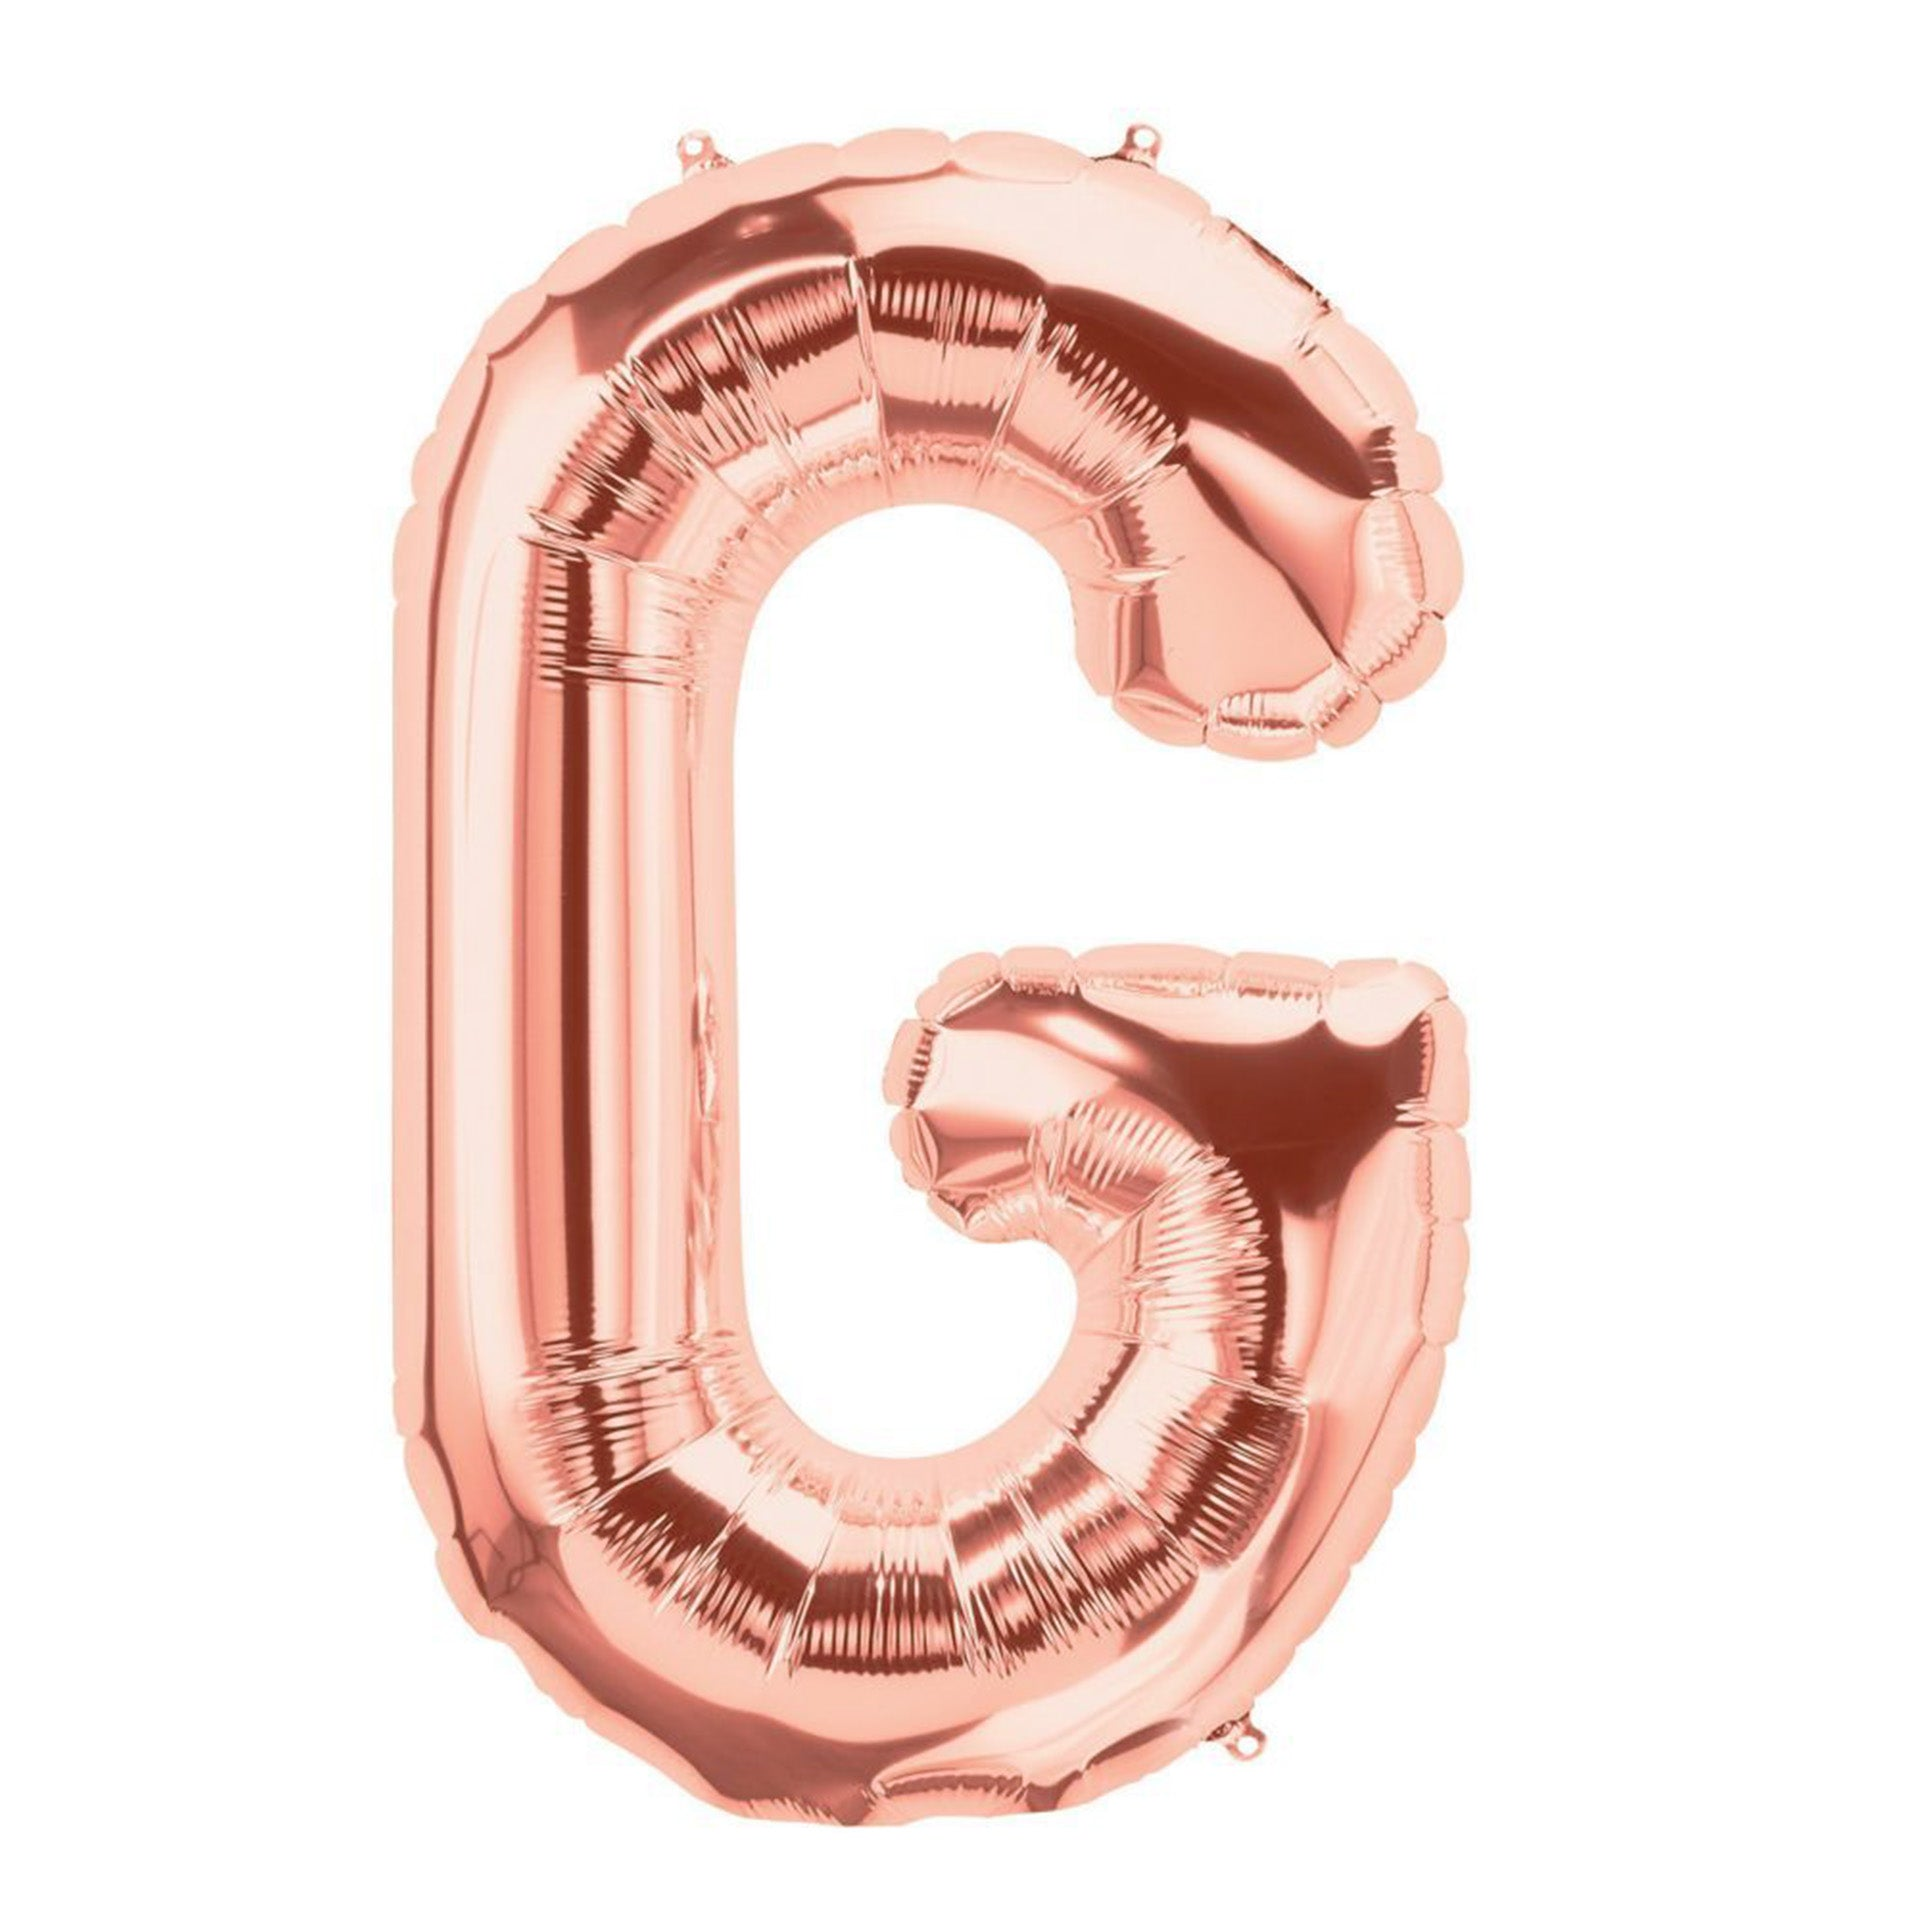 Letter G rose gold foil balloon for sale online in Dubai